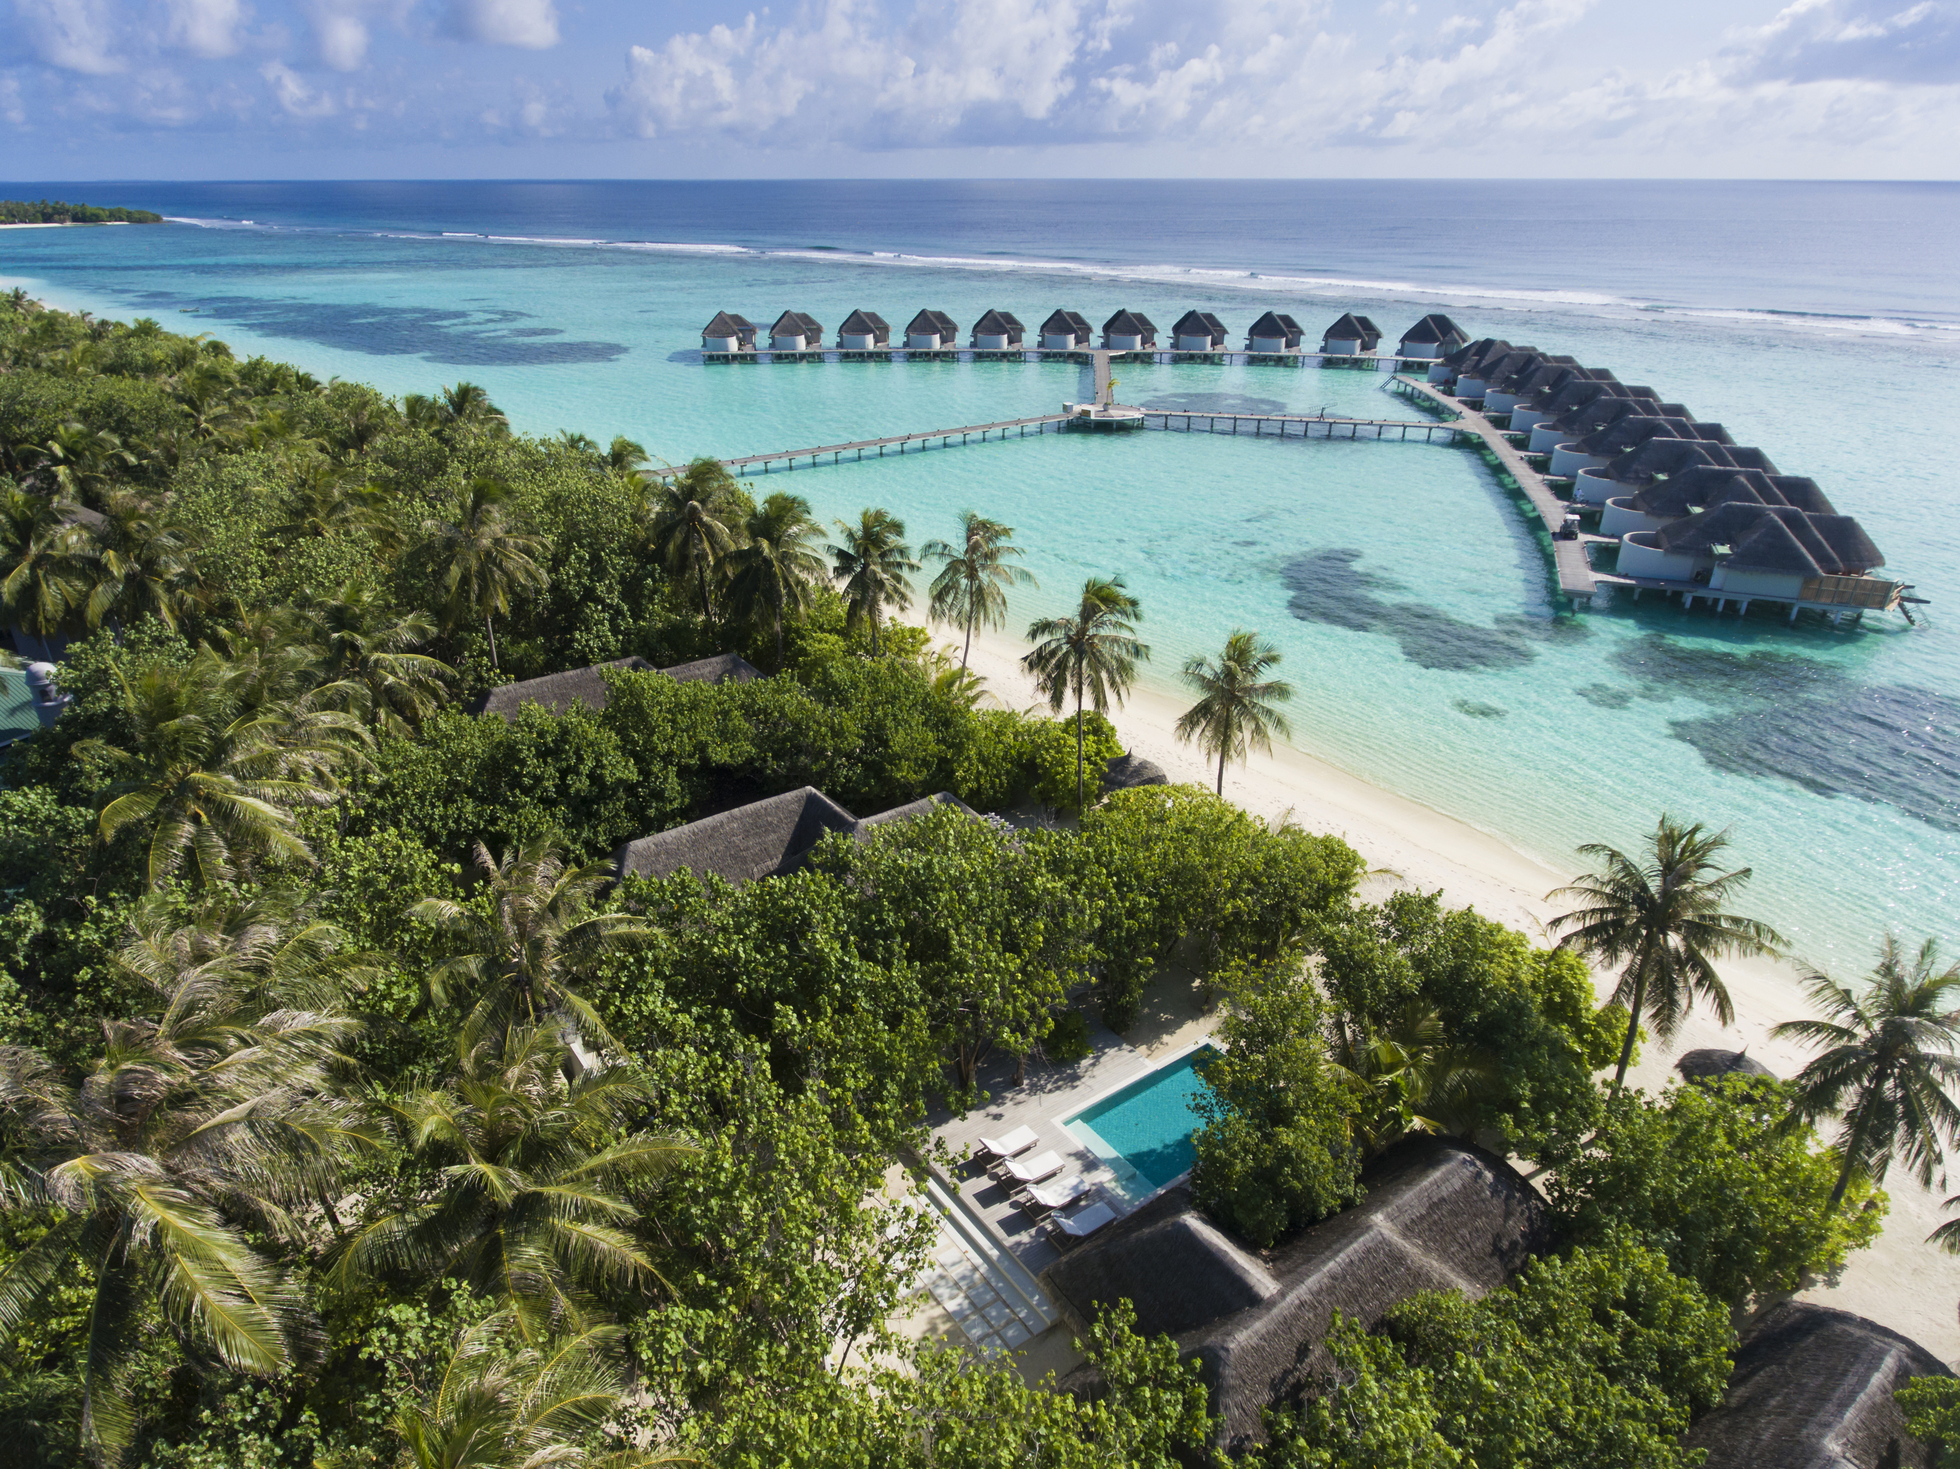 Luxury hotel Kanuhura Resort & Spa Maldives 5-star Villa with swimming pool